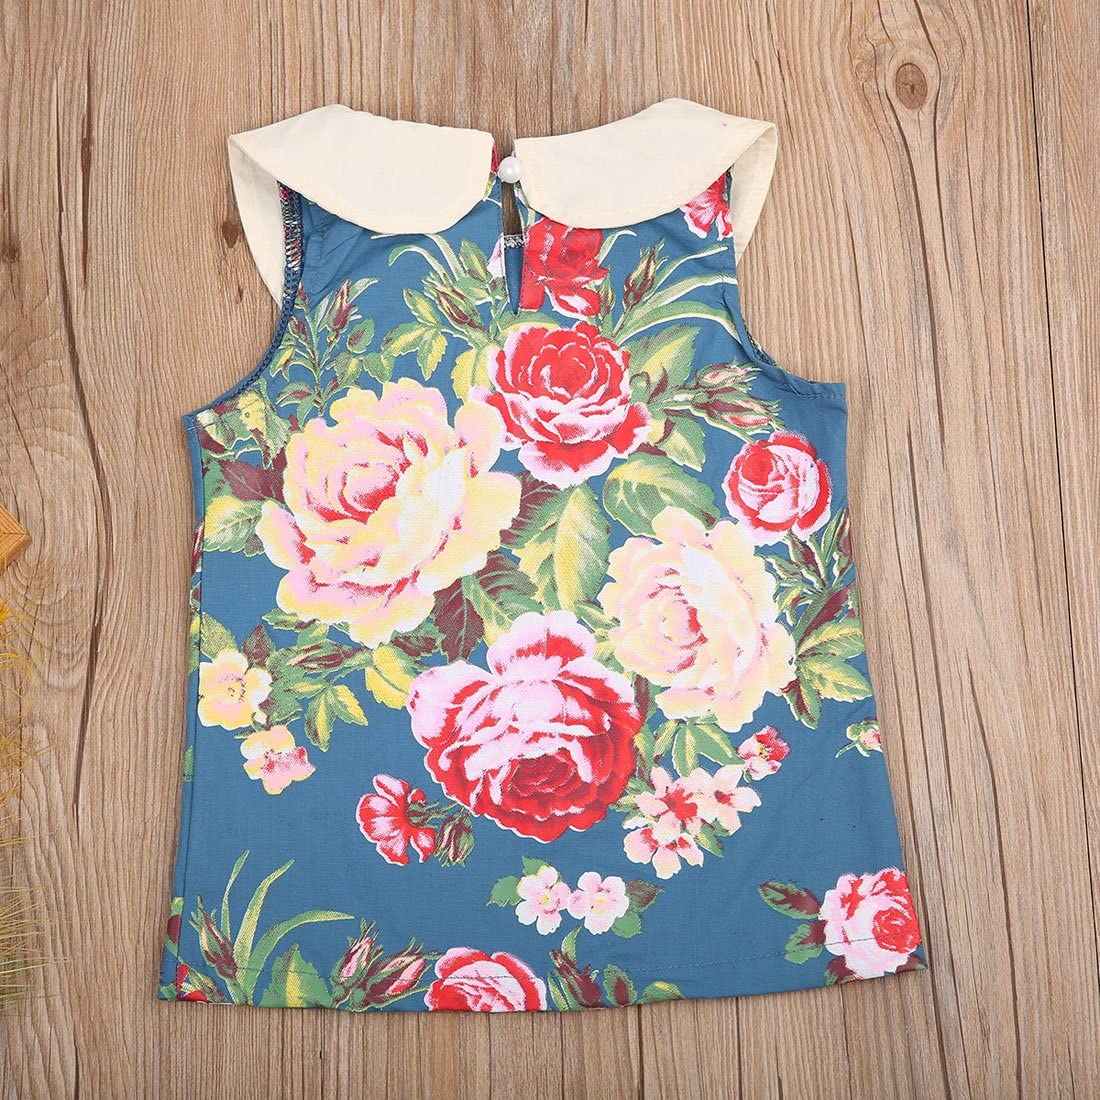 Baby Girls Outfit Sleeveless Floral Top Blouse+Green Shorts Clothes Sets